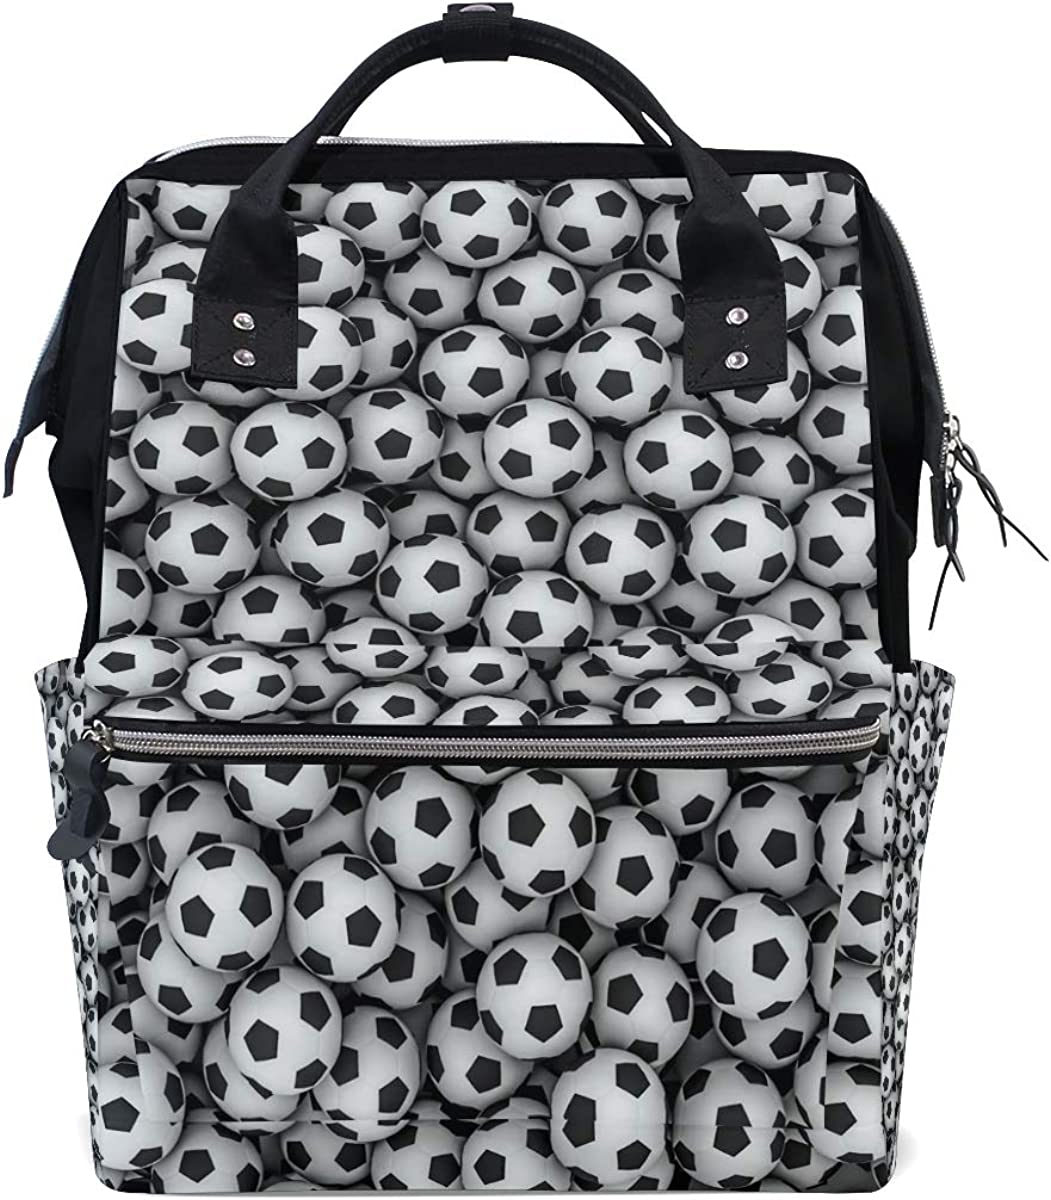 imobaby Football Patterns Print Changing Bags Large Capacity Handbags Canvas Shoulder Bag Backpack